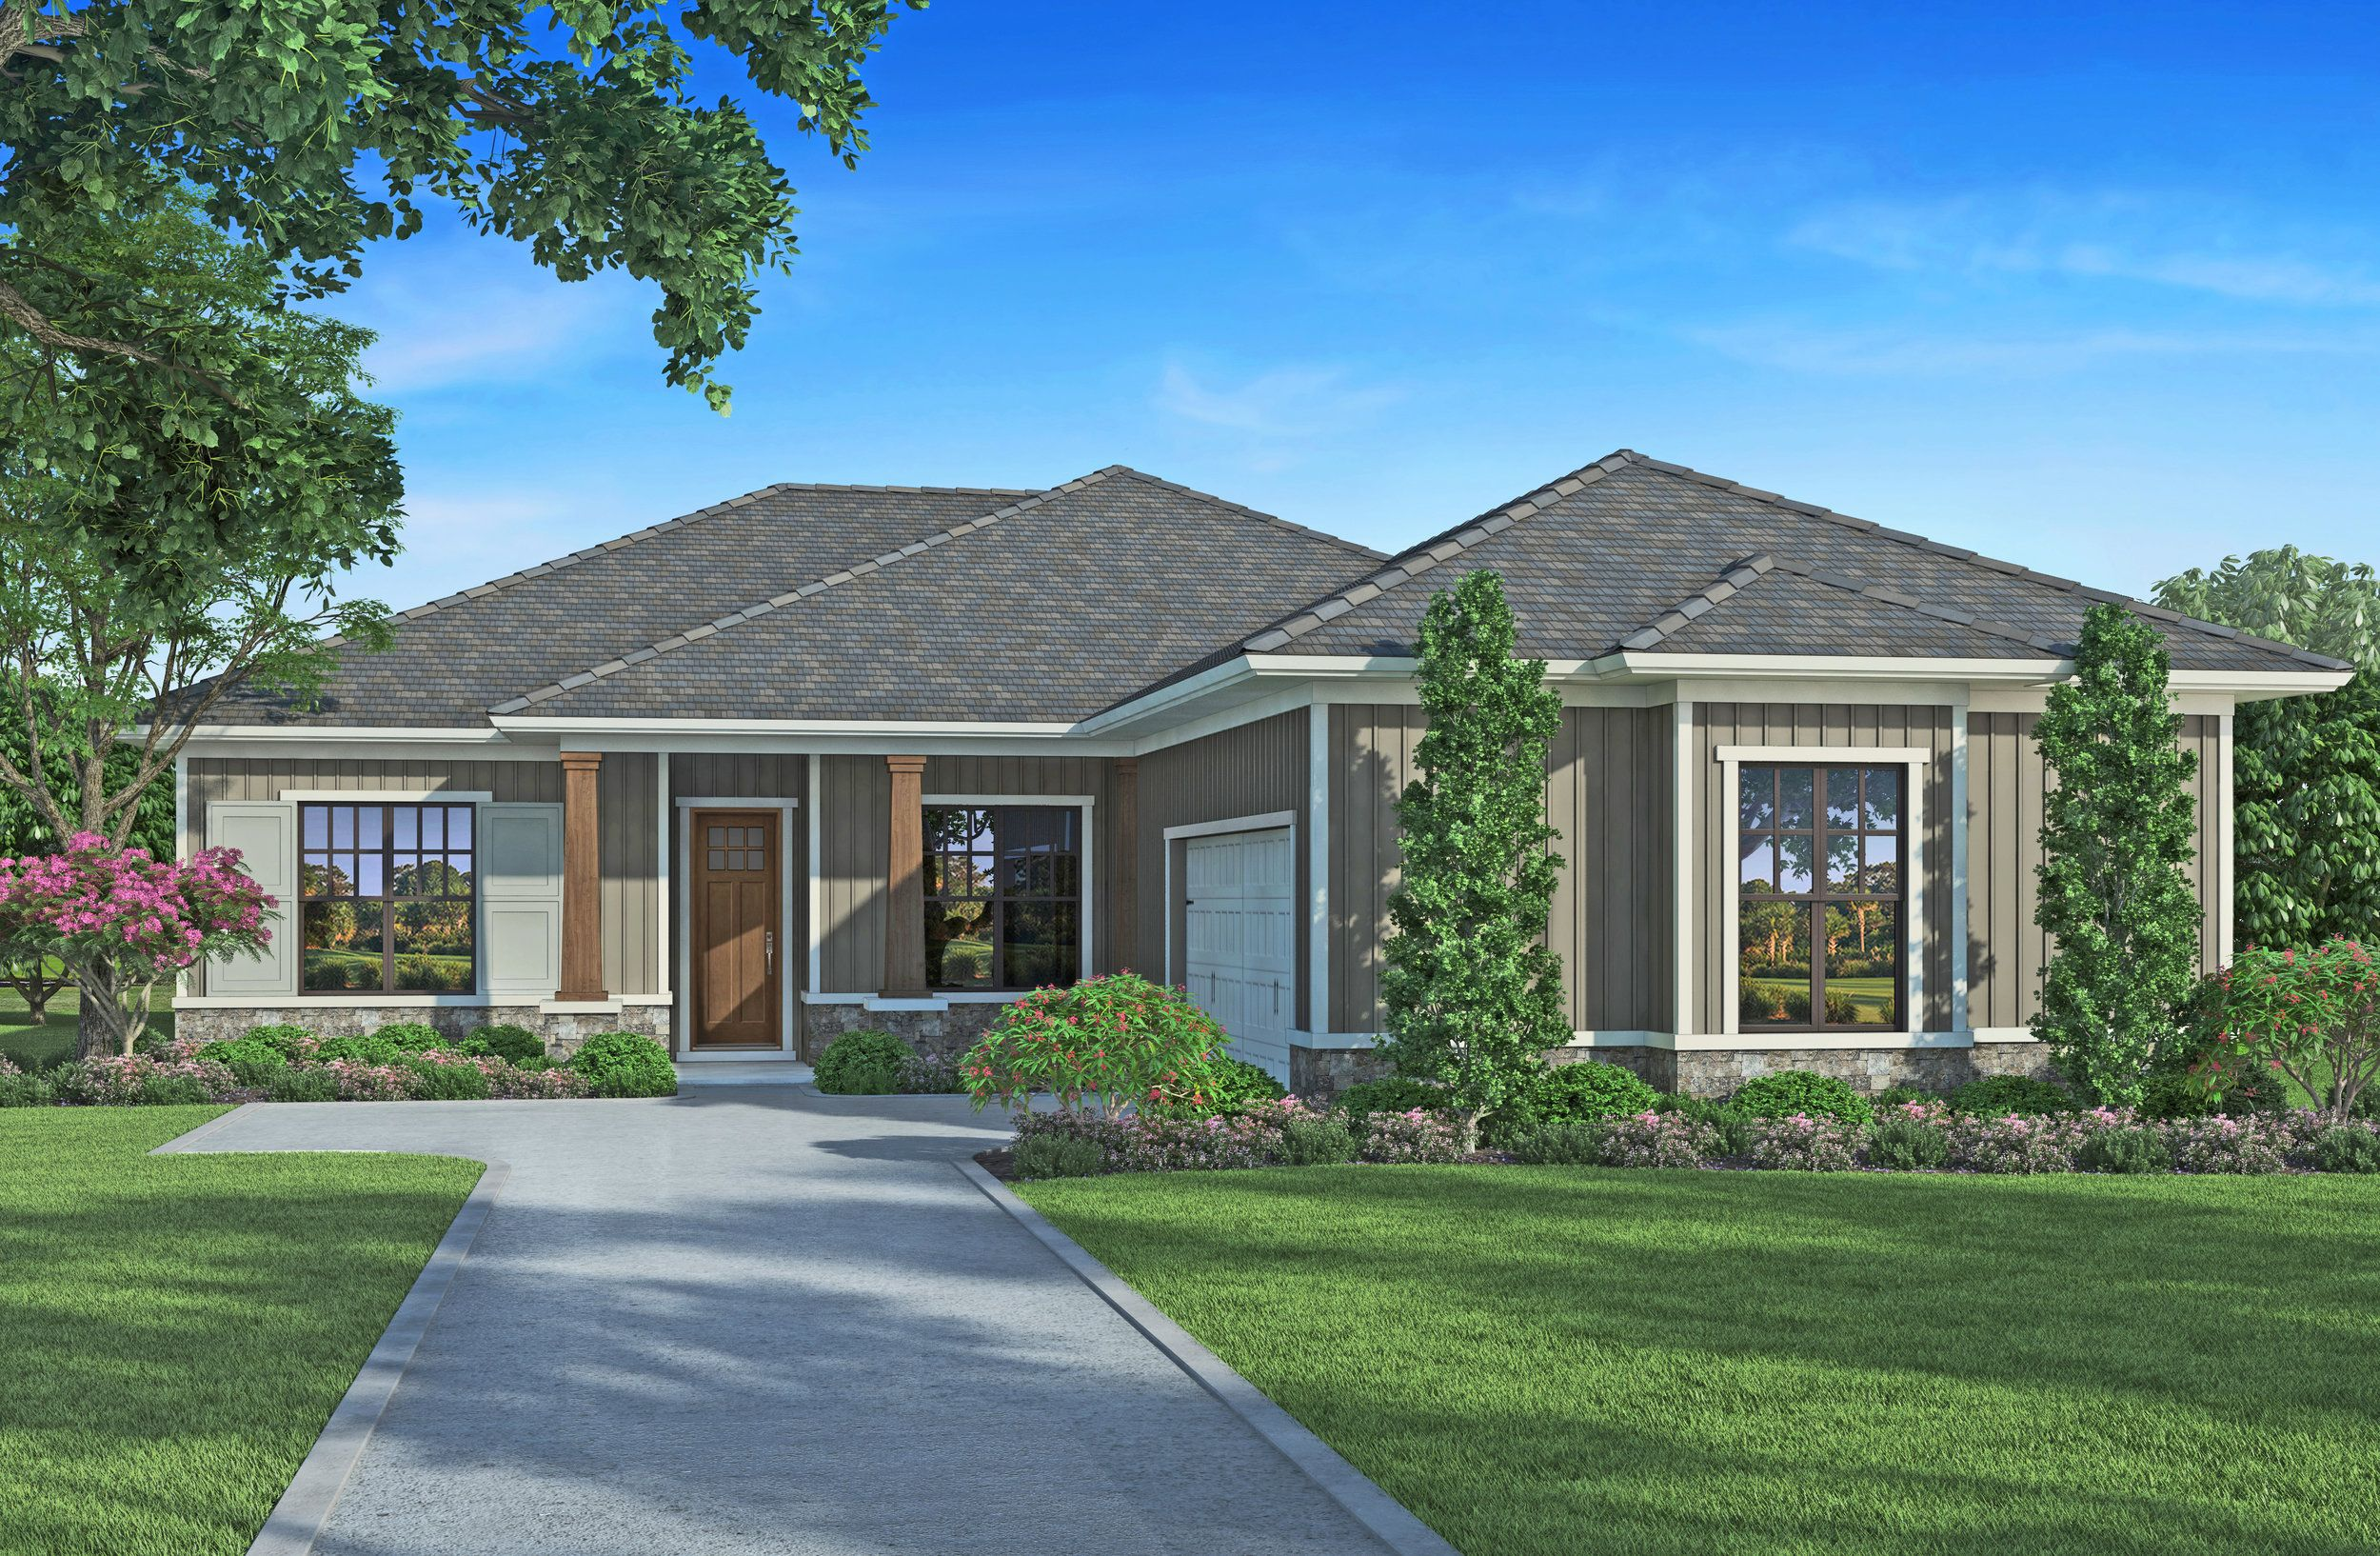 Cedarwood House Plan 510 4 Bed 3 Bath 2 324 Sq Ft Wright Jenkins Custom Home Design Stock House Floor Plans In 2020 Craftsman Style House Plans Single Story Homes House Plans